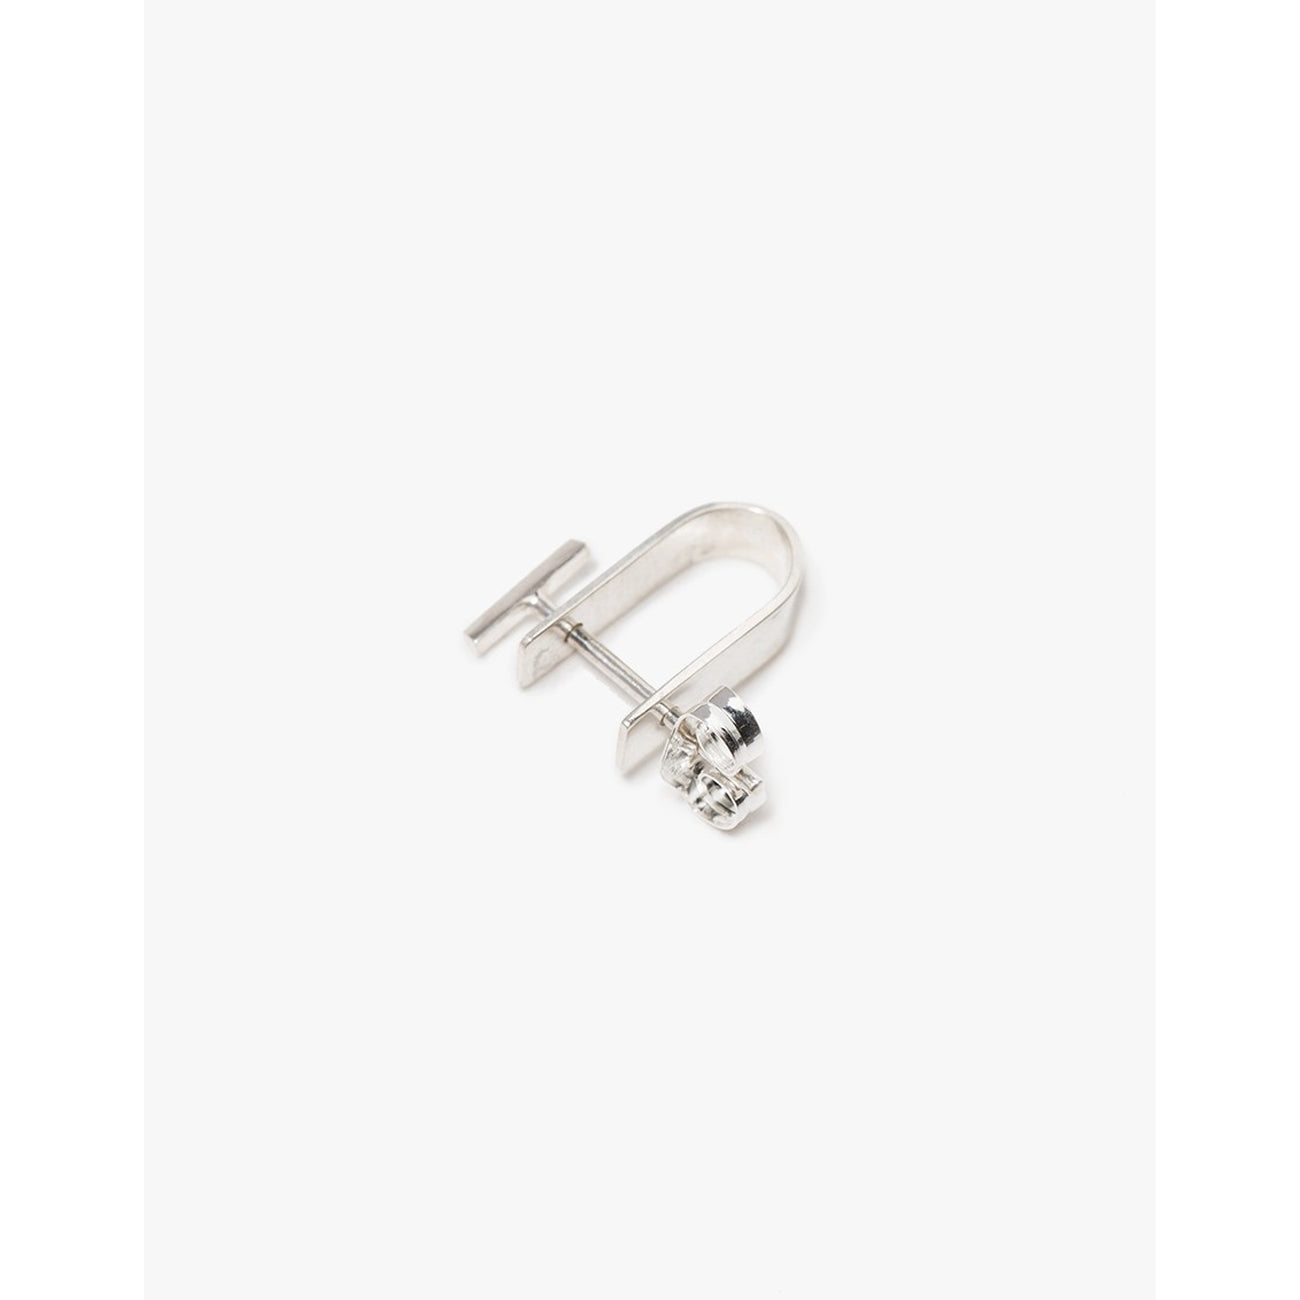 Kathleen Whitaker Bevel Stud and Small Cuff in Sterling Silver